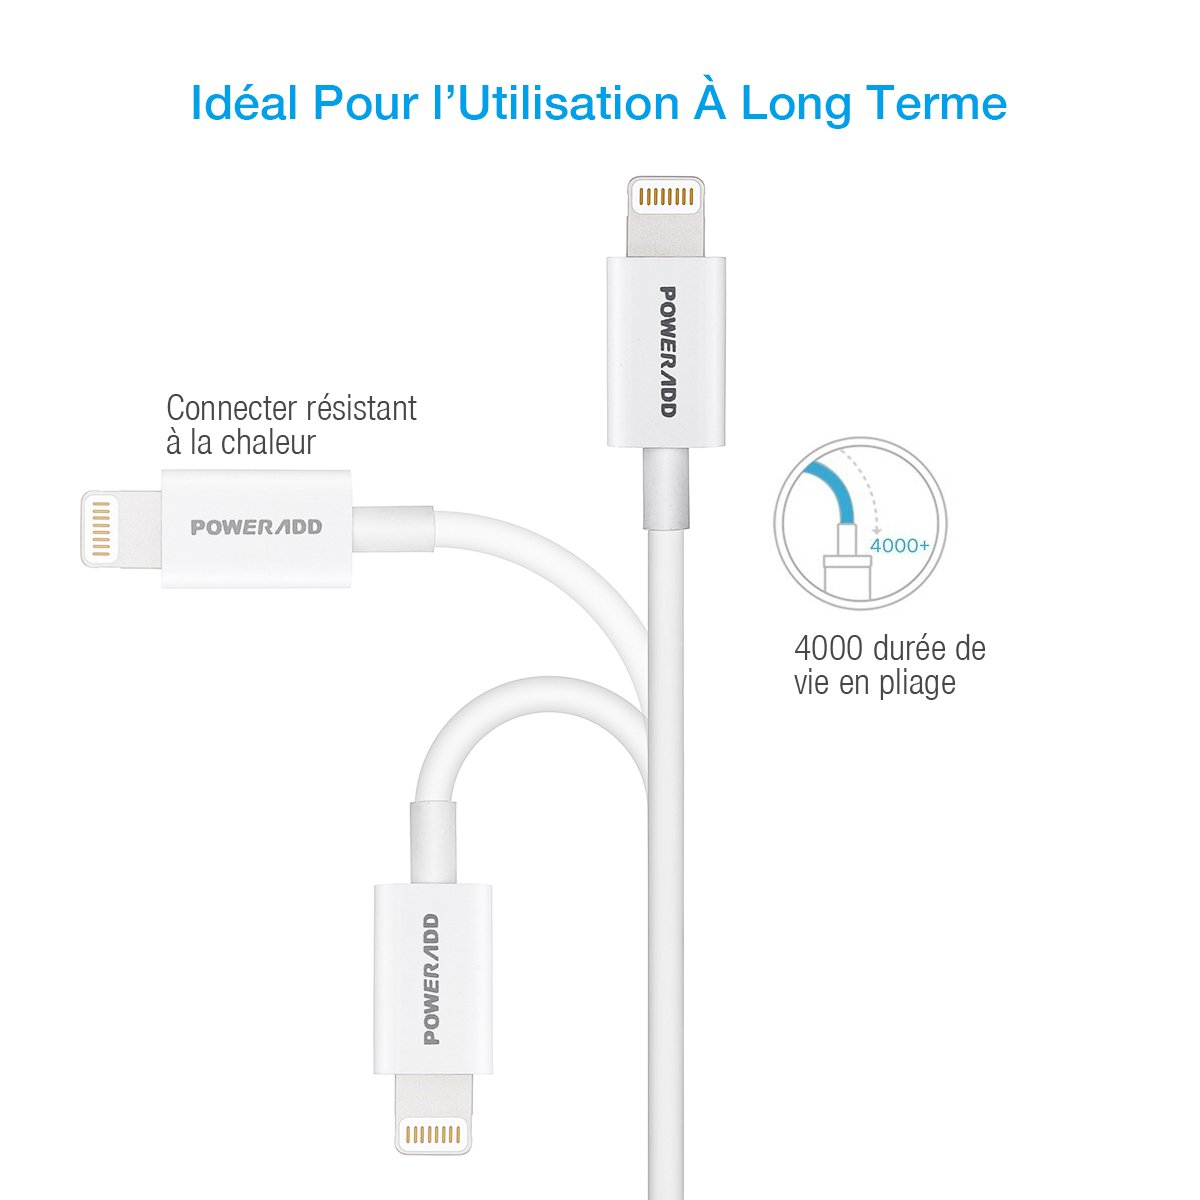 Poweradd 8-pin chargeur iPhone, Câble Lightning vers USB[Apple MFI Certified] et Synchronisation vers Lightning pour iPhone 7/ 6s / iPad Pro/ iPad Air/ iPod Touch 5th gen et Des Autres -1 m Blanc